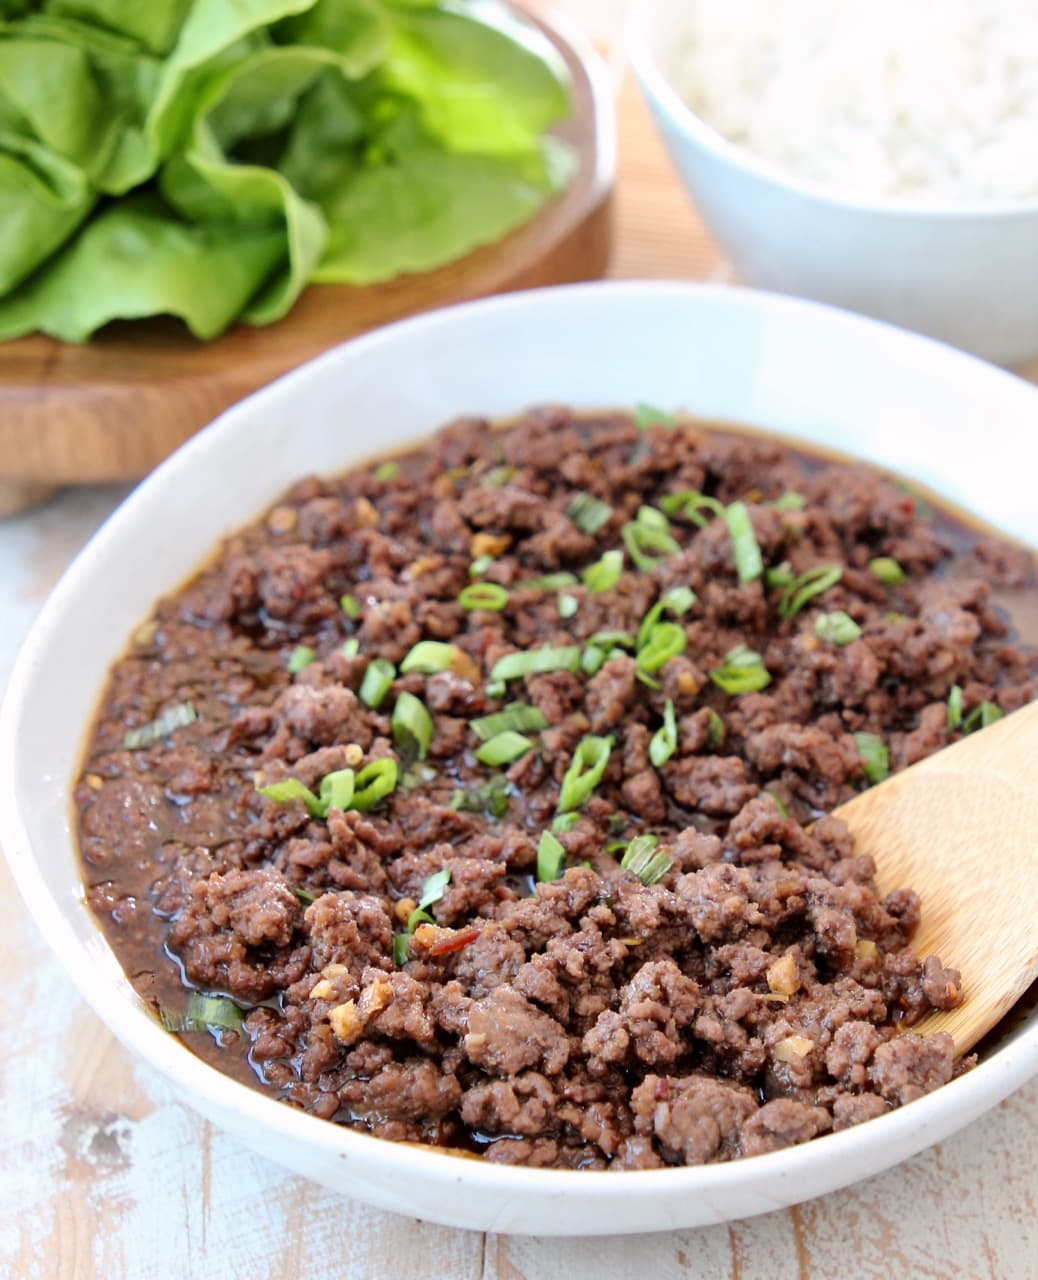 Korean BBQ Ground Beef in Bowl with Scallions and Wooden Spoon